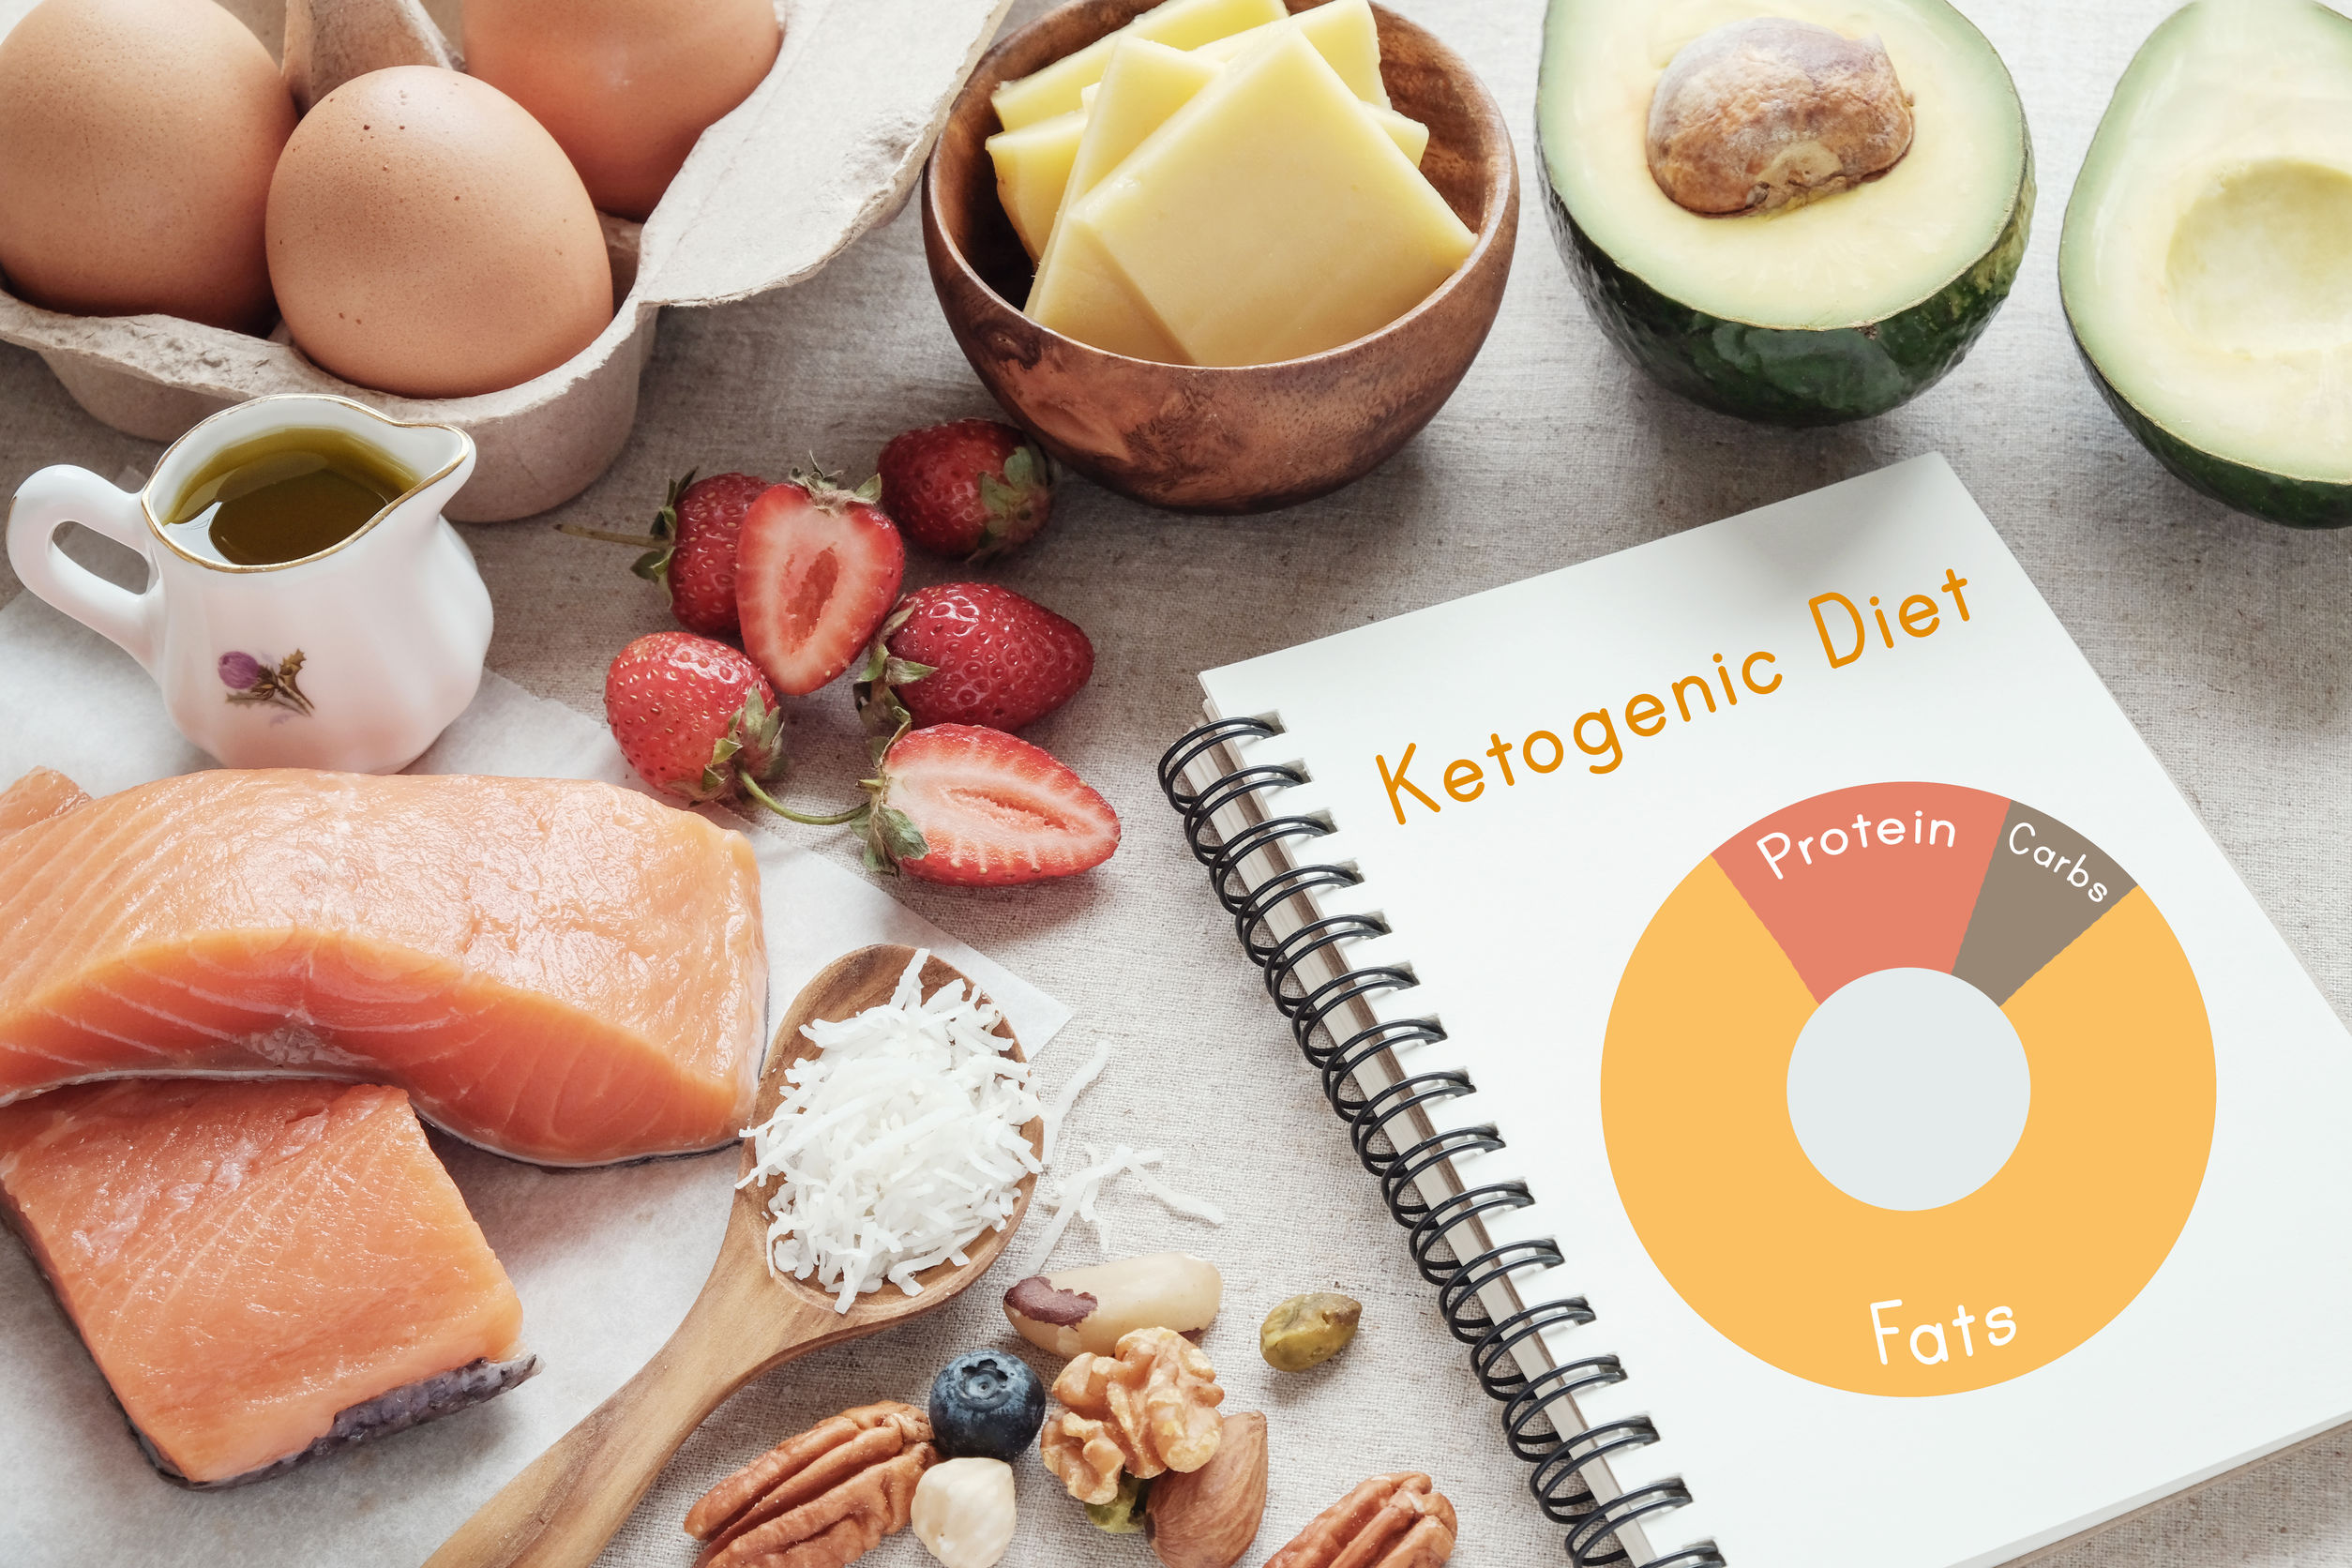 Keto Diet Program